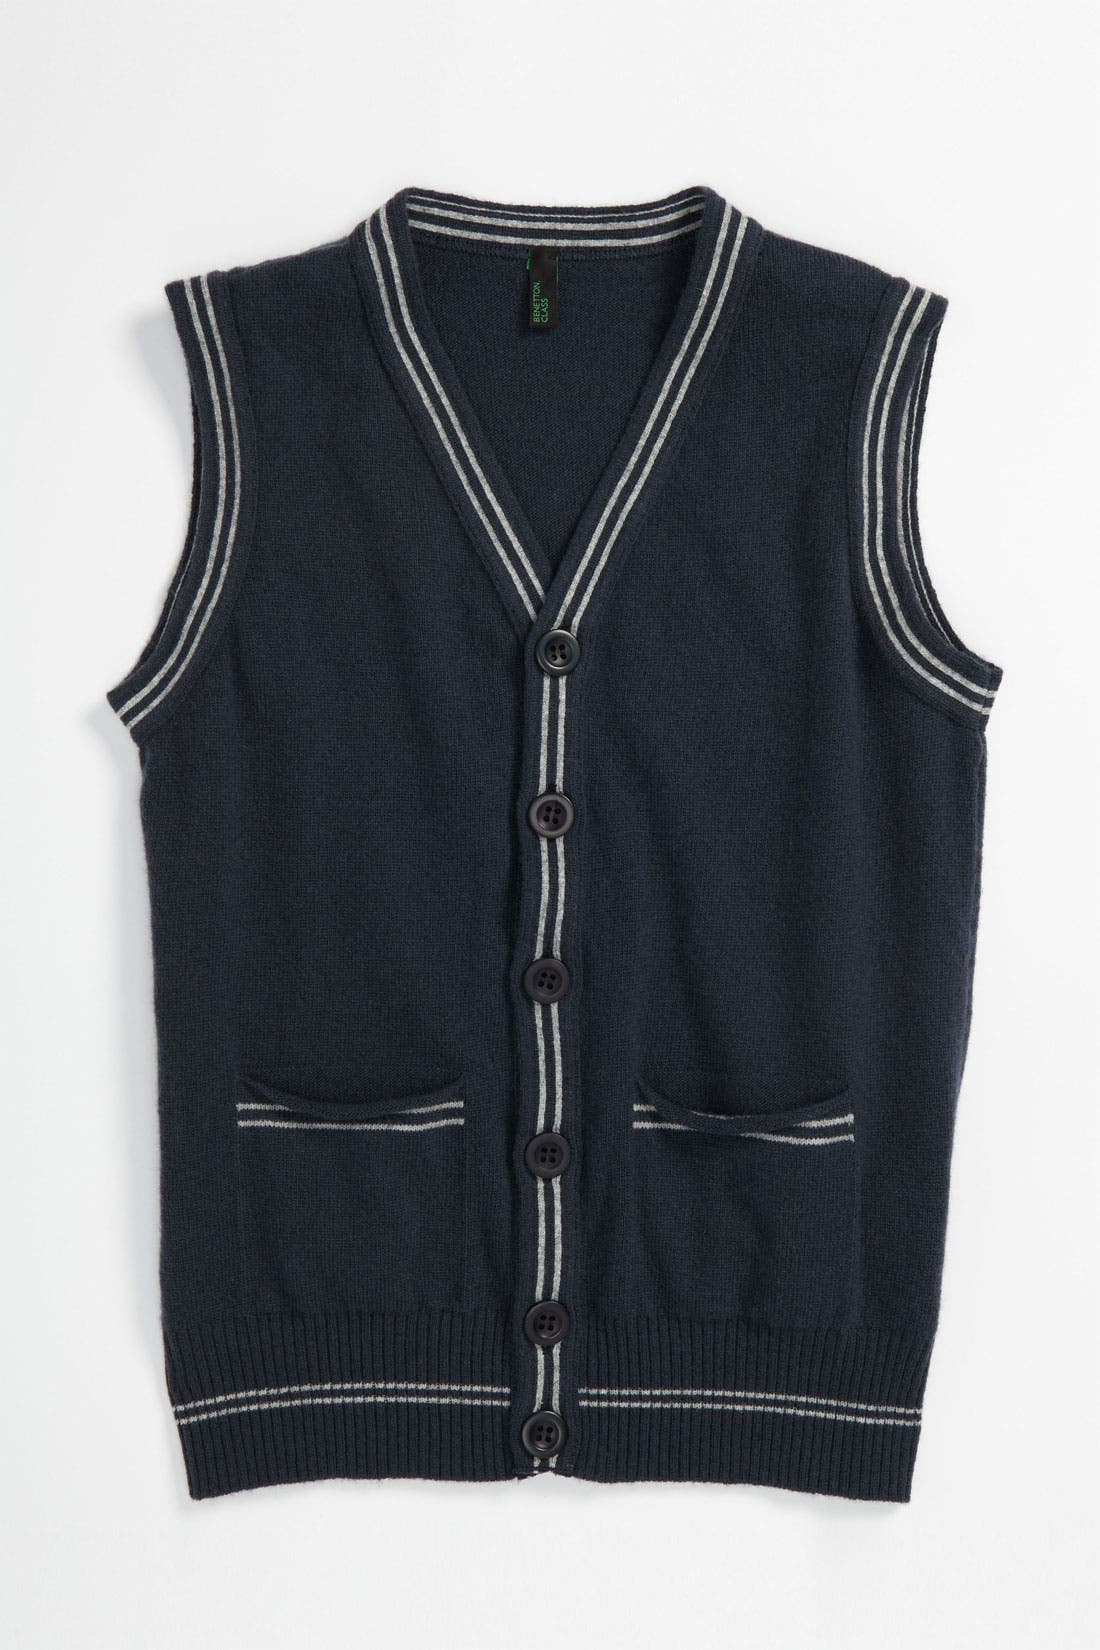 Alternate Image 1 Selected - United Colors of Benetton Kids Sweater Vest (Little Boys & Big Boys)